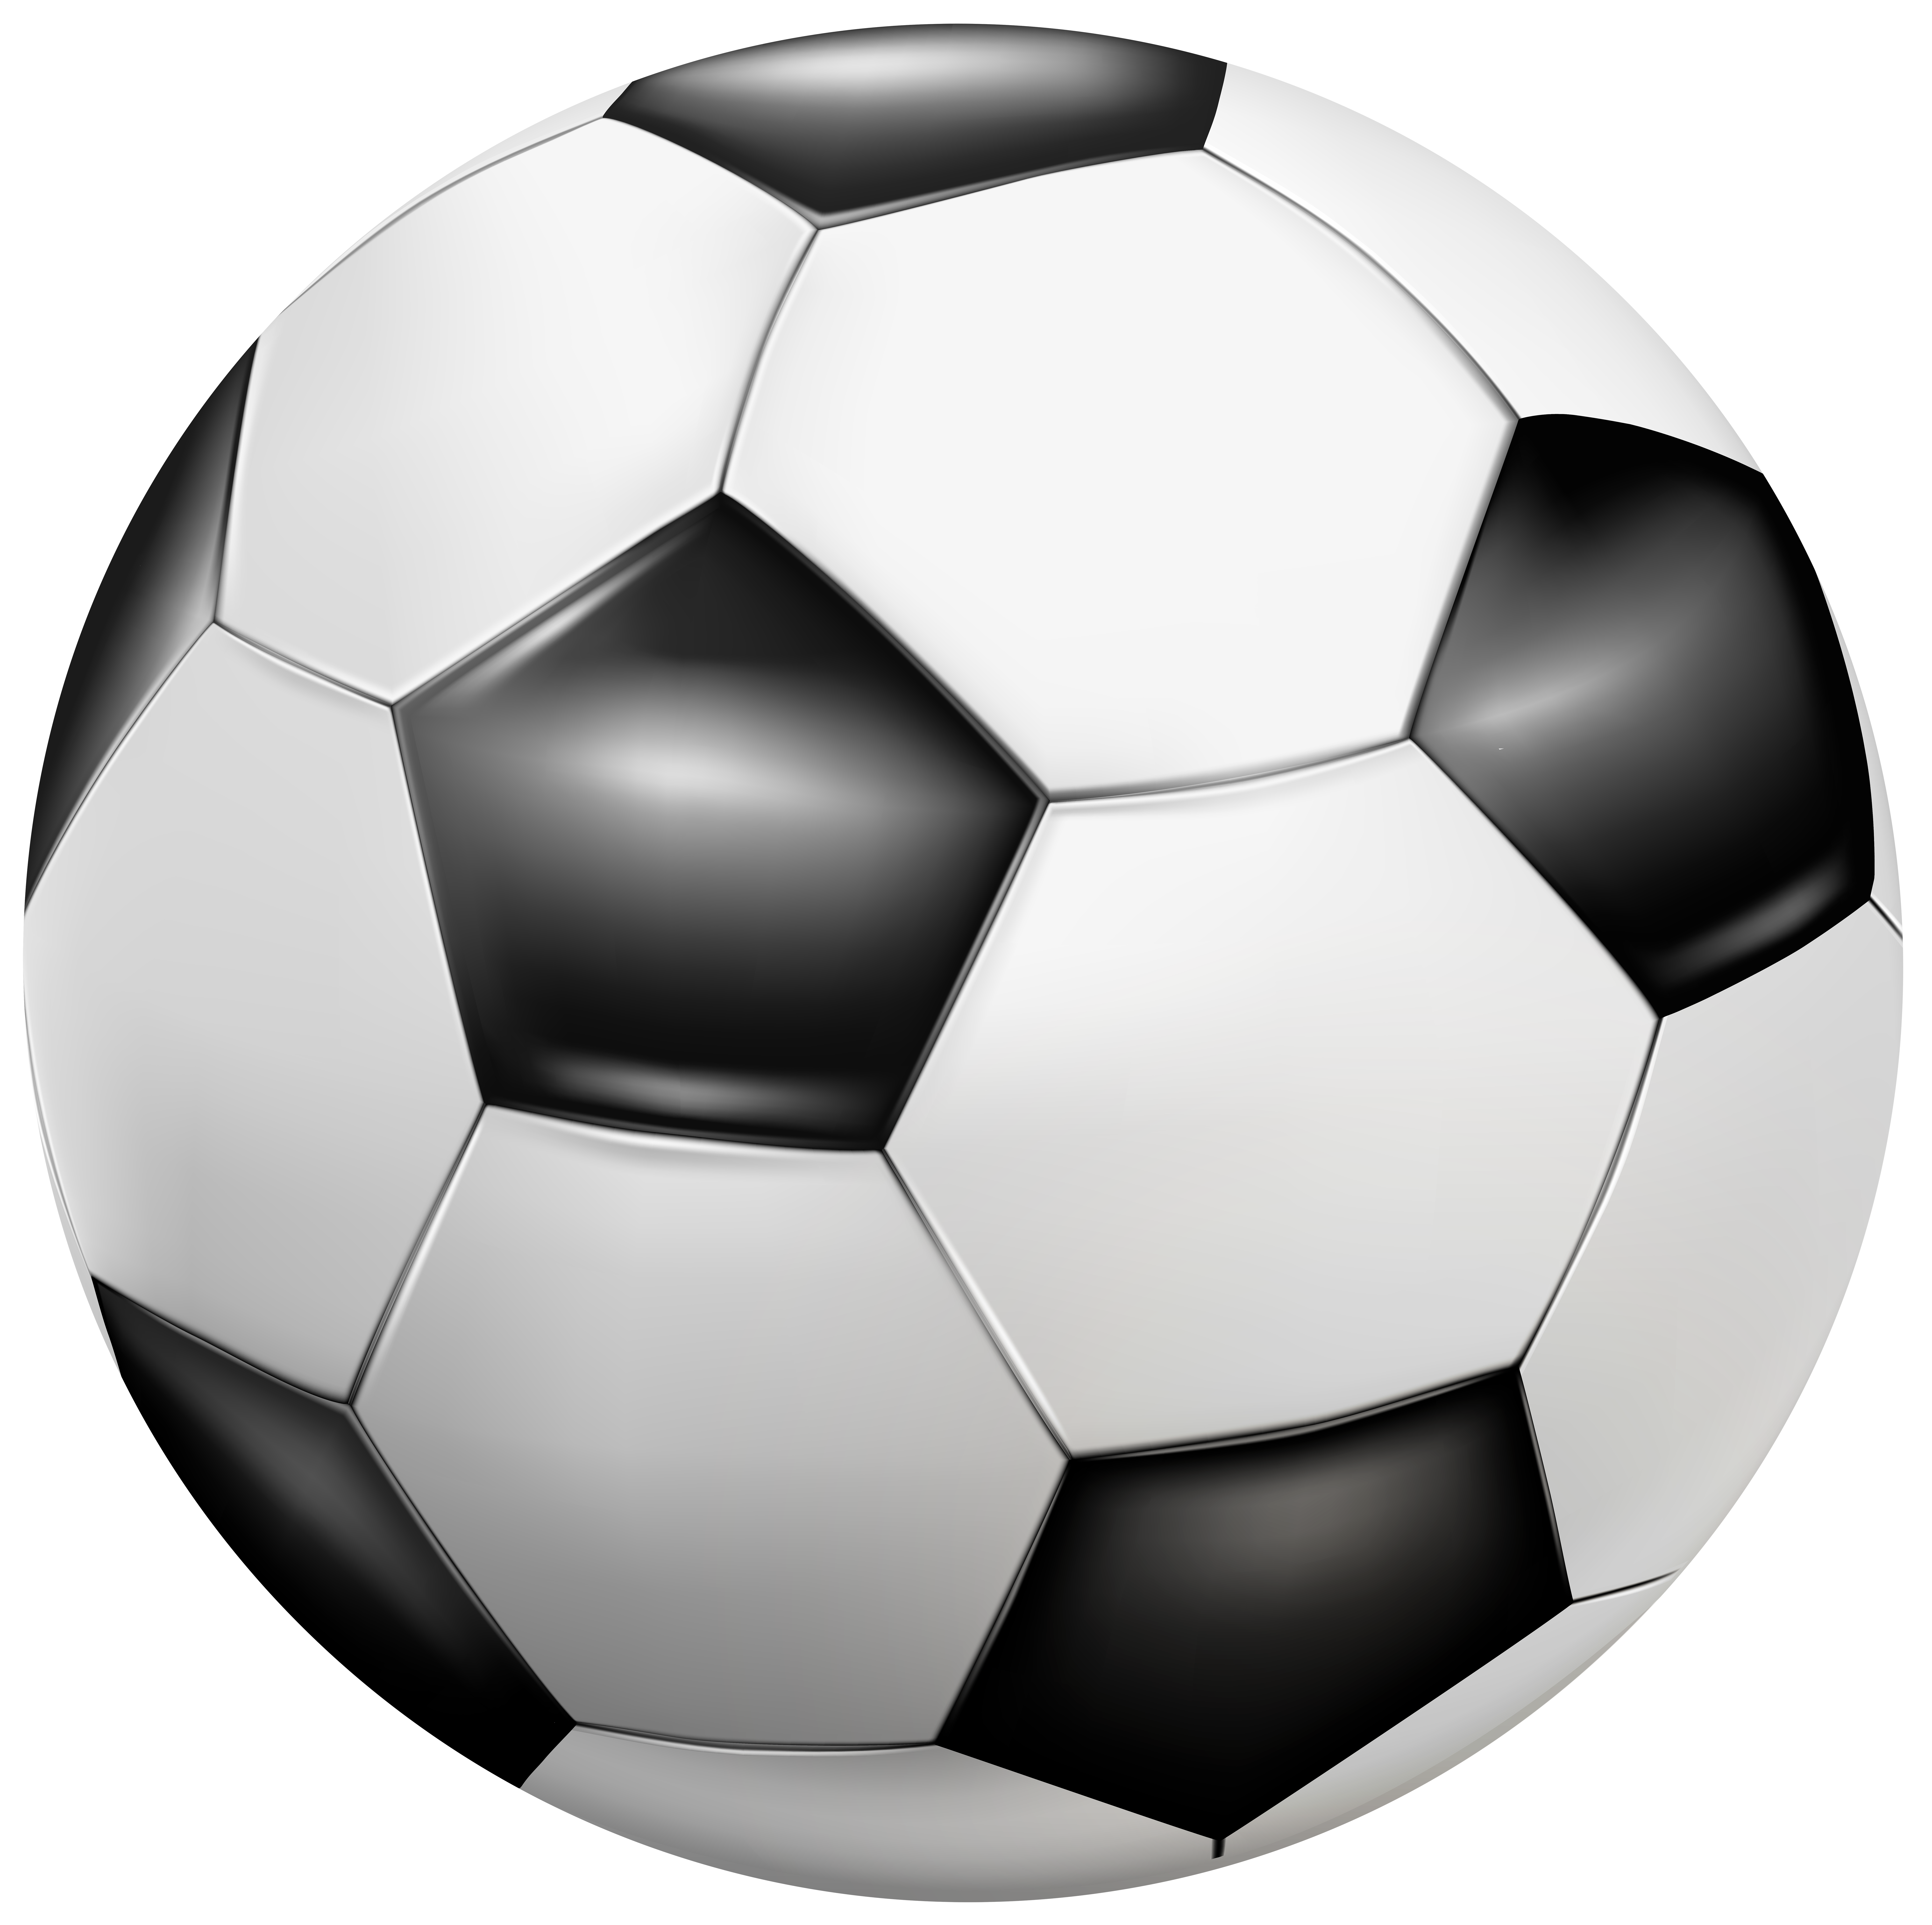 Soccer ball breaking glass clipart transparent background clipart black and white stock 2018 FIFA World Cup Football Ball game - Football Cliparts ... clipart black and white stock